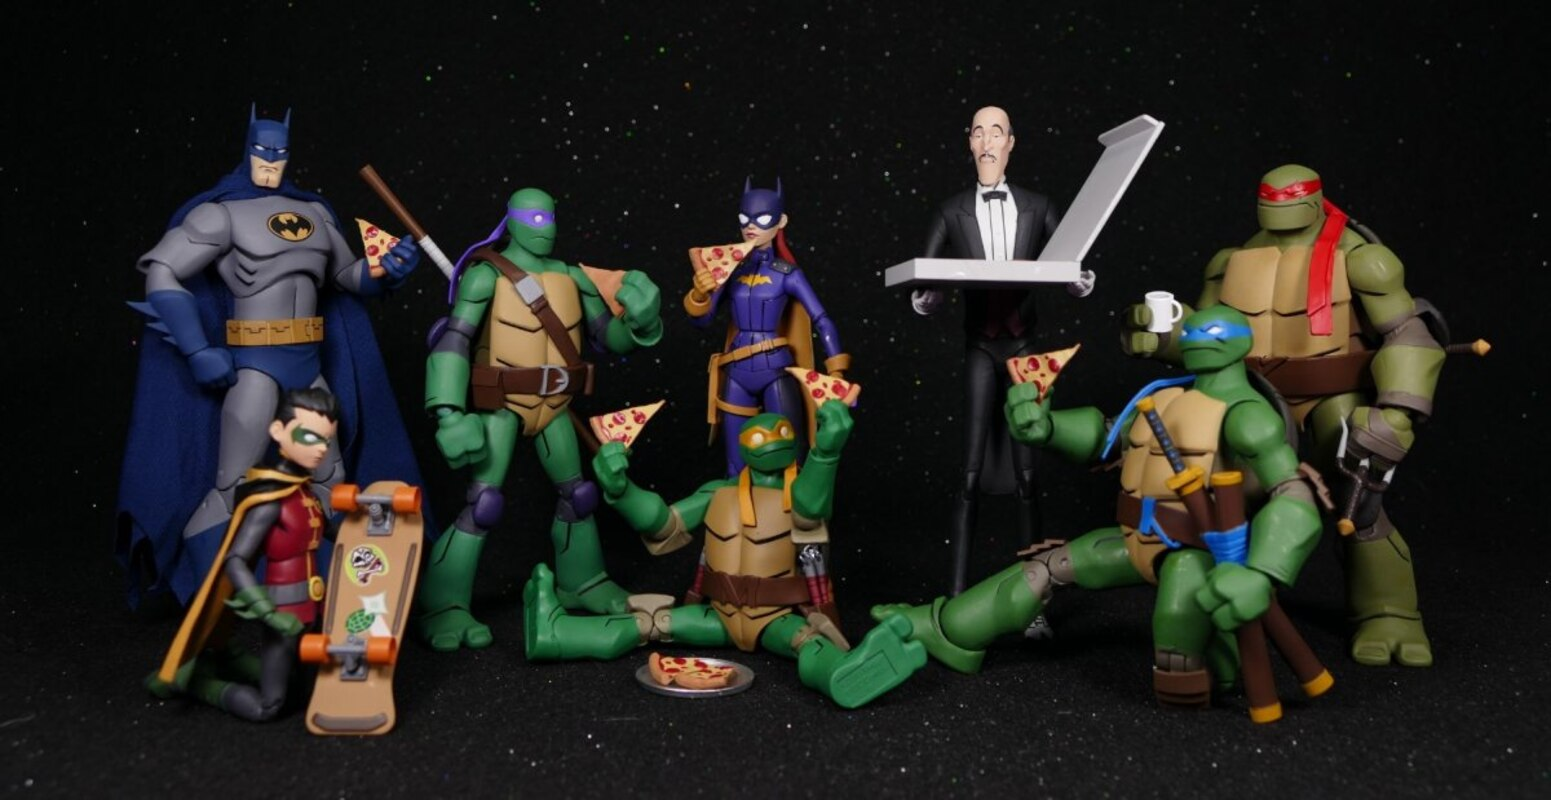 Batman Vs Tmnt Alfred And Michelangelo Action Figure 2 Pack Video Review And Images